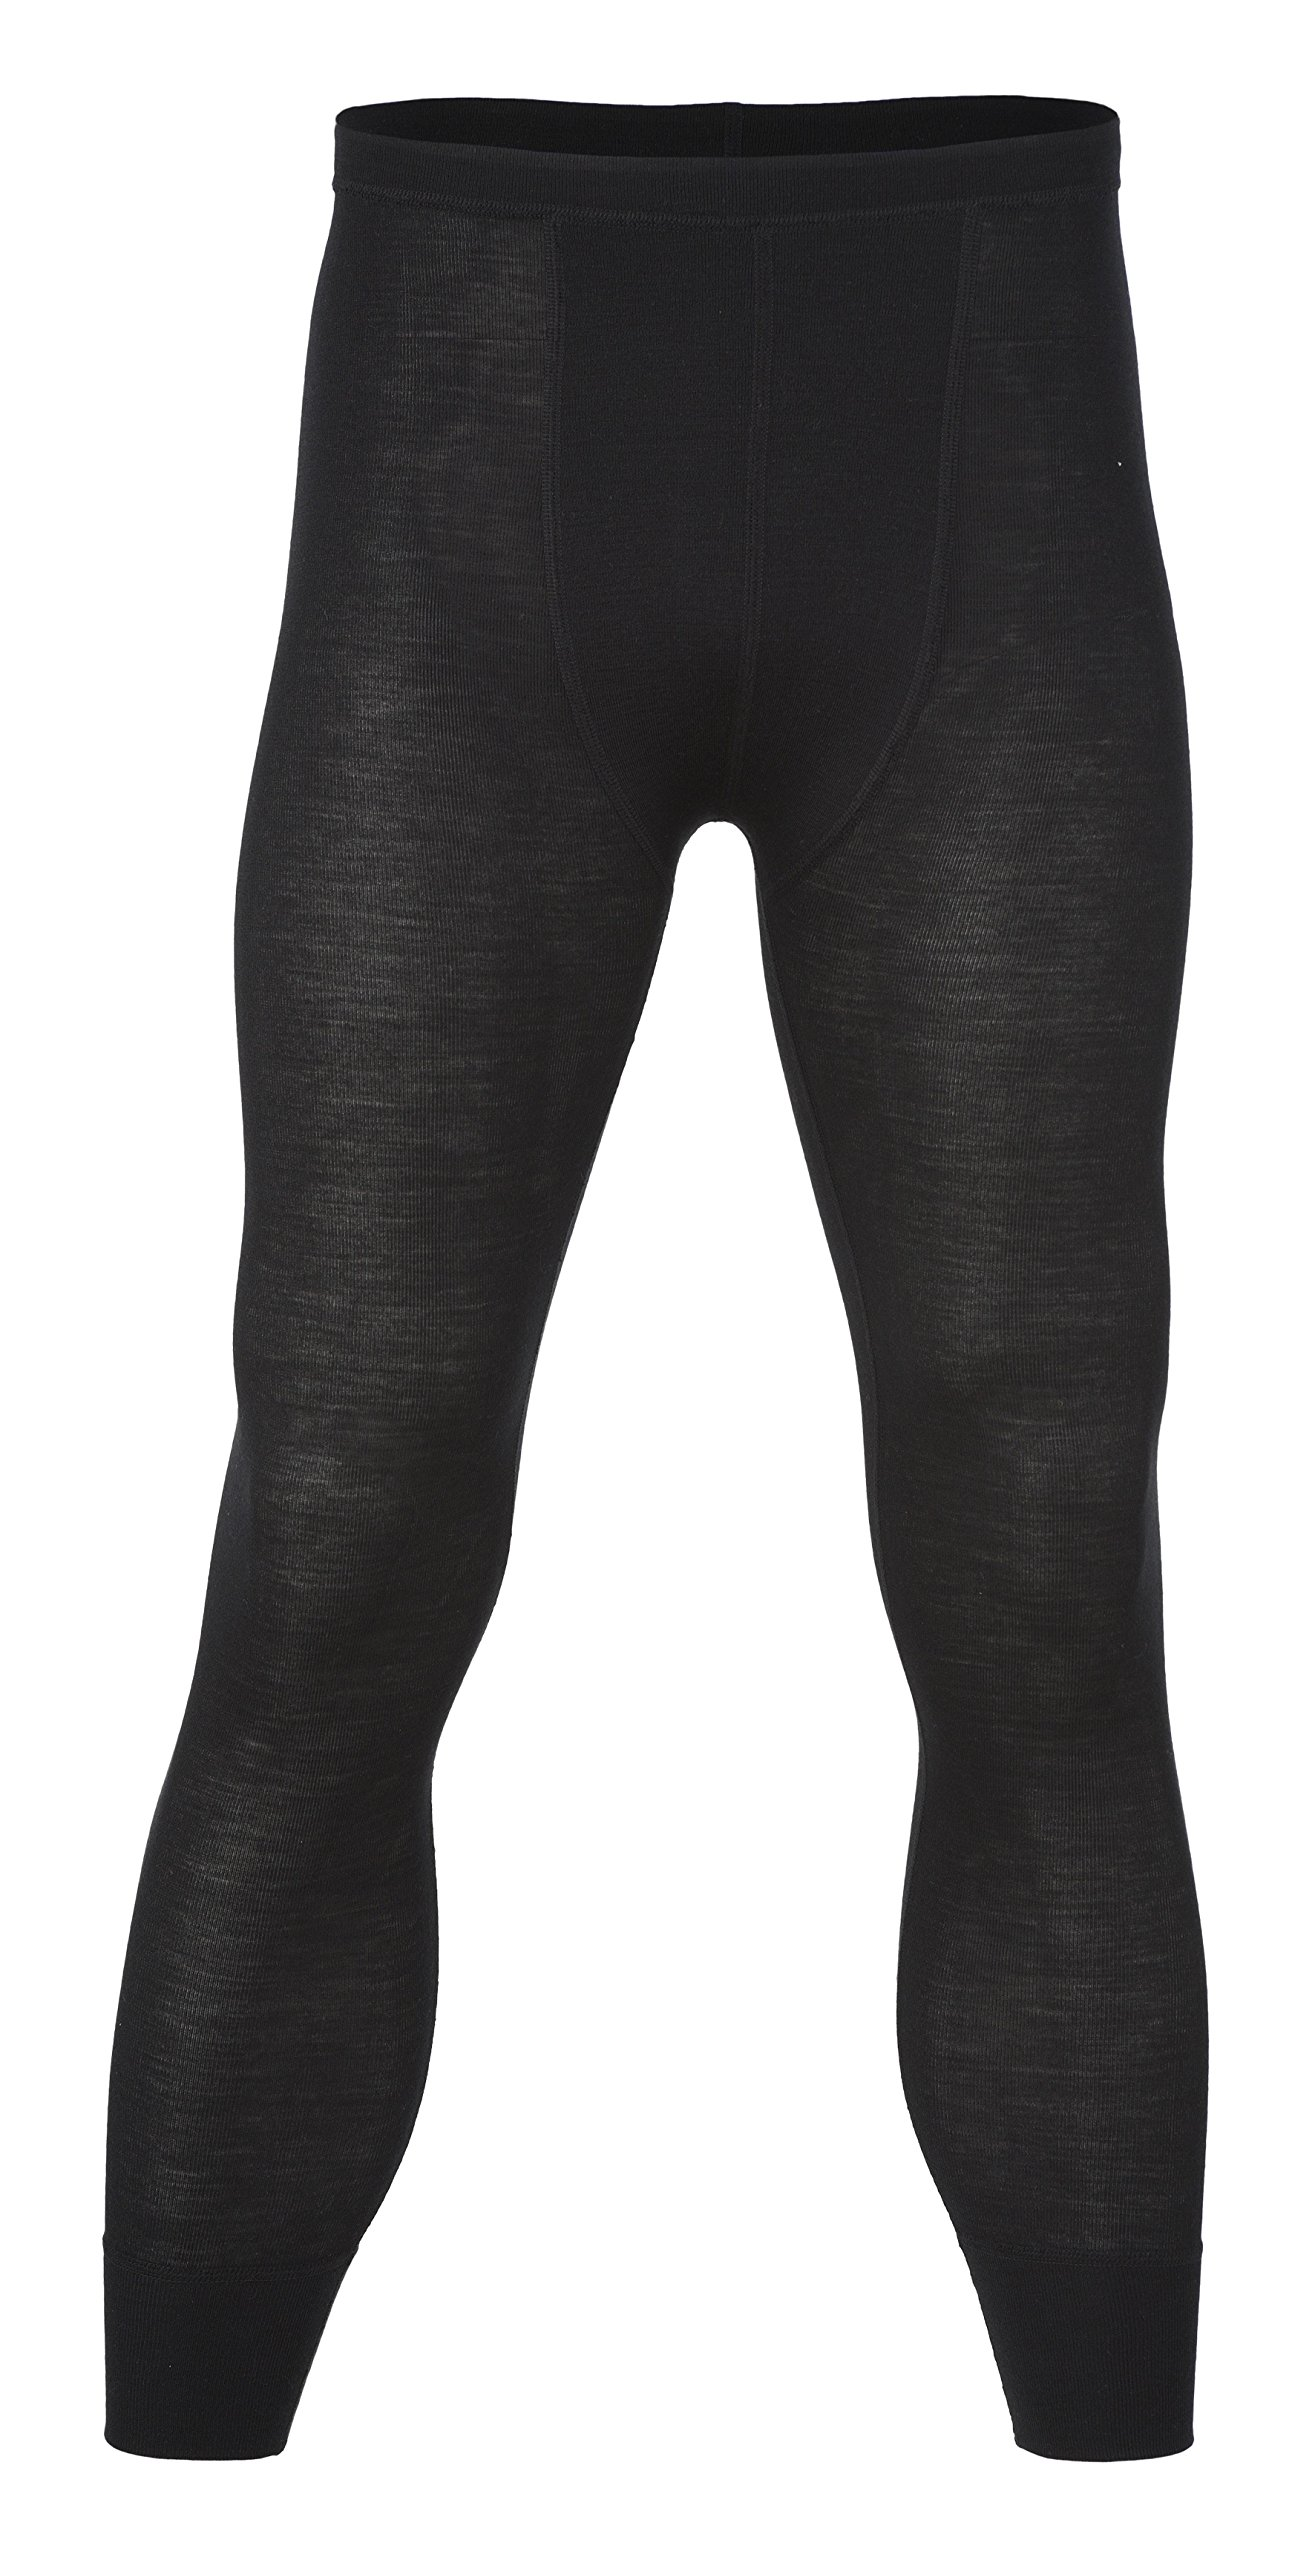 Engel 70% Organic Merino Wool 30% Silk Men's Long Johns Leggings. Made in Germany. (Black, EU 46/48) by Engel